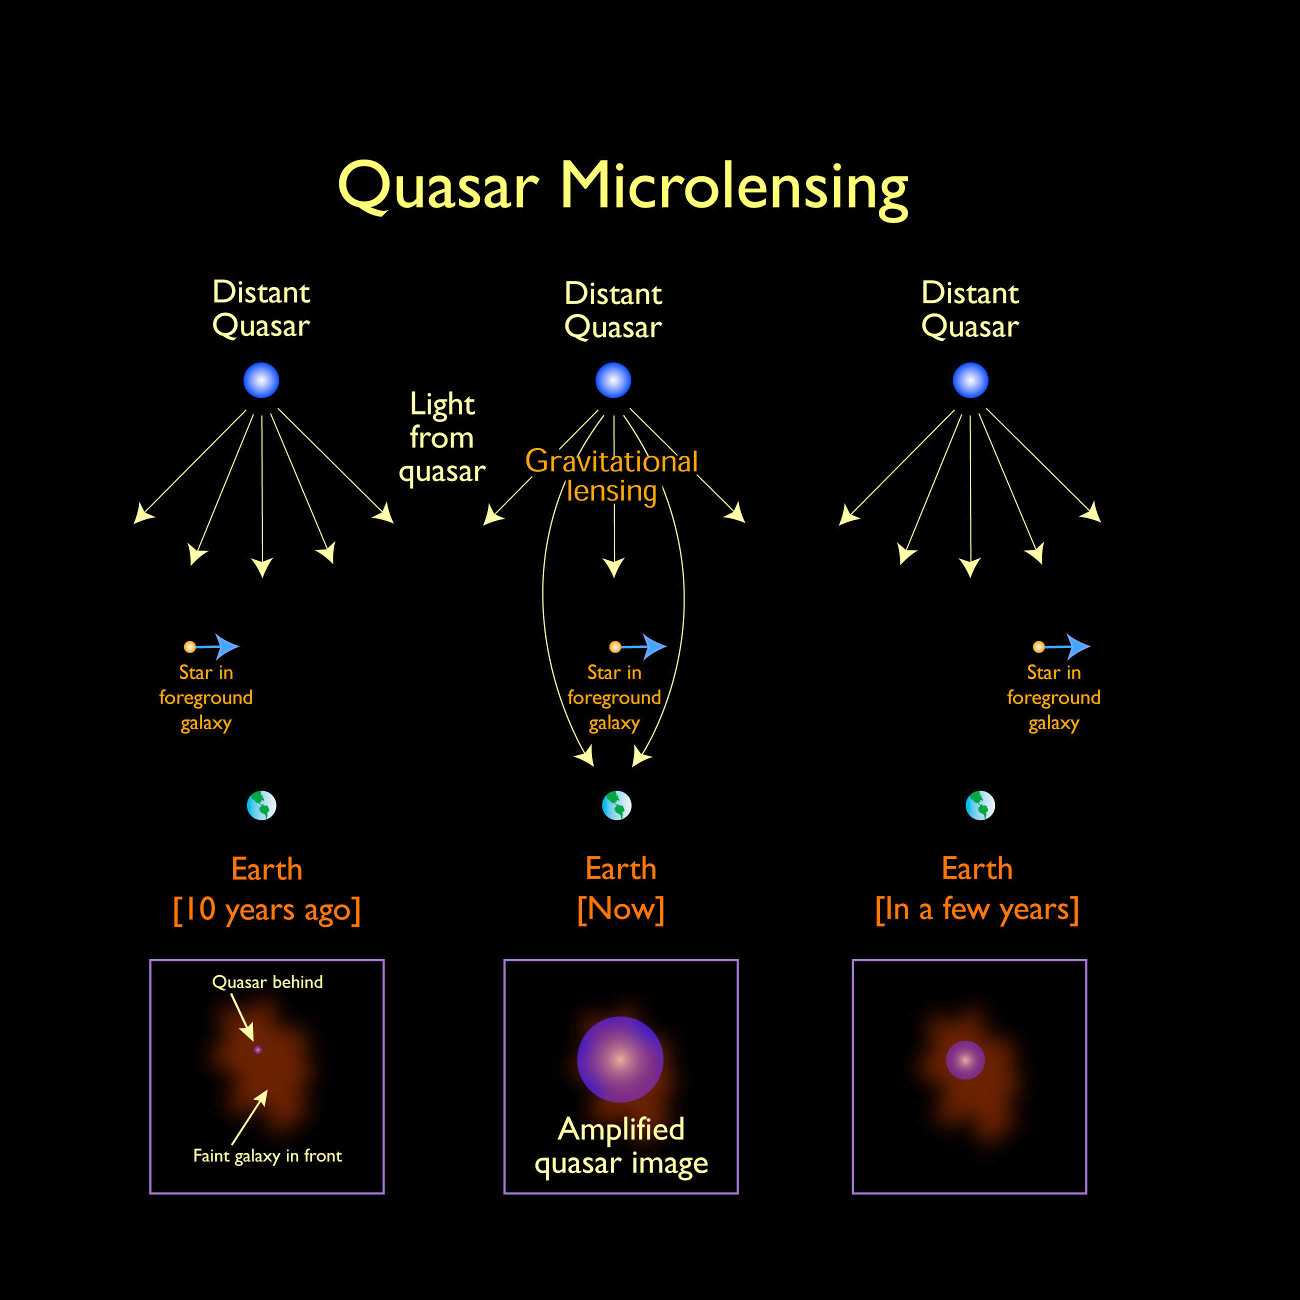 A schematic diagram showing how microlensing affects our view of quasars, the most luminous active galactic nuclei (AGNs). Click graphic for a full-size version. Image credit: Alastair Bruce / University of Edinburgh.